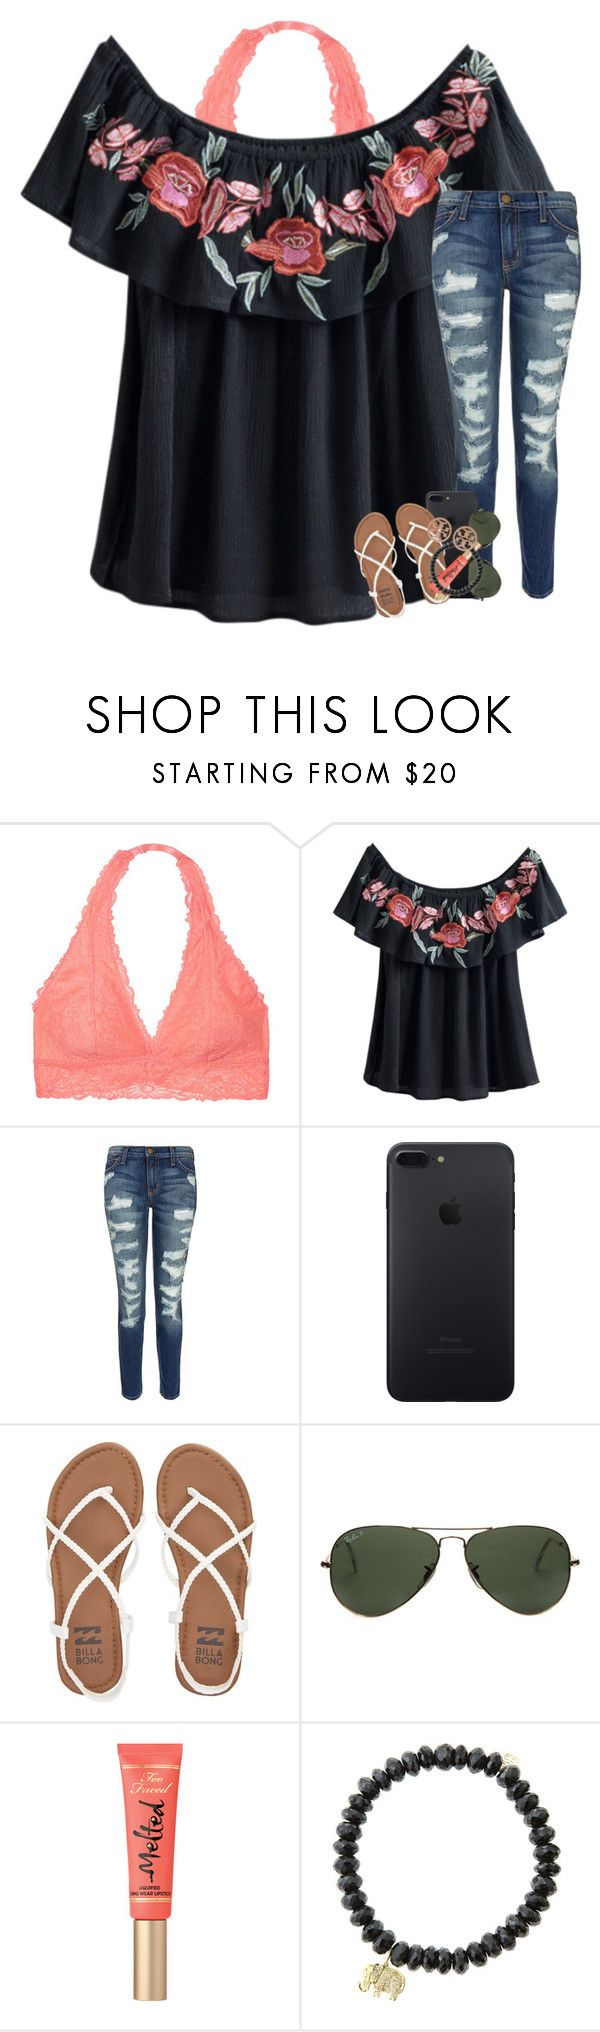 """""""happy Mother's Day to my best friend """" by preppymilitarybrat ❤ liked on Polyvore featuring Victoria's Secret, Current/Elliott, Billabong, Ray-Ban, Sydney Evan and Tory Burch"""